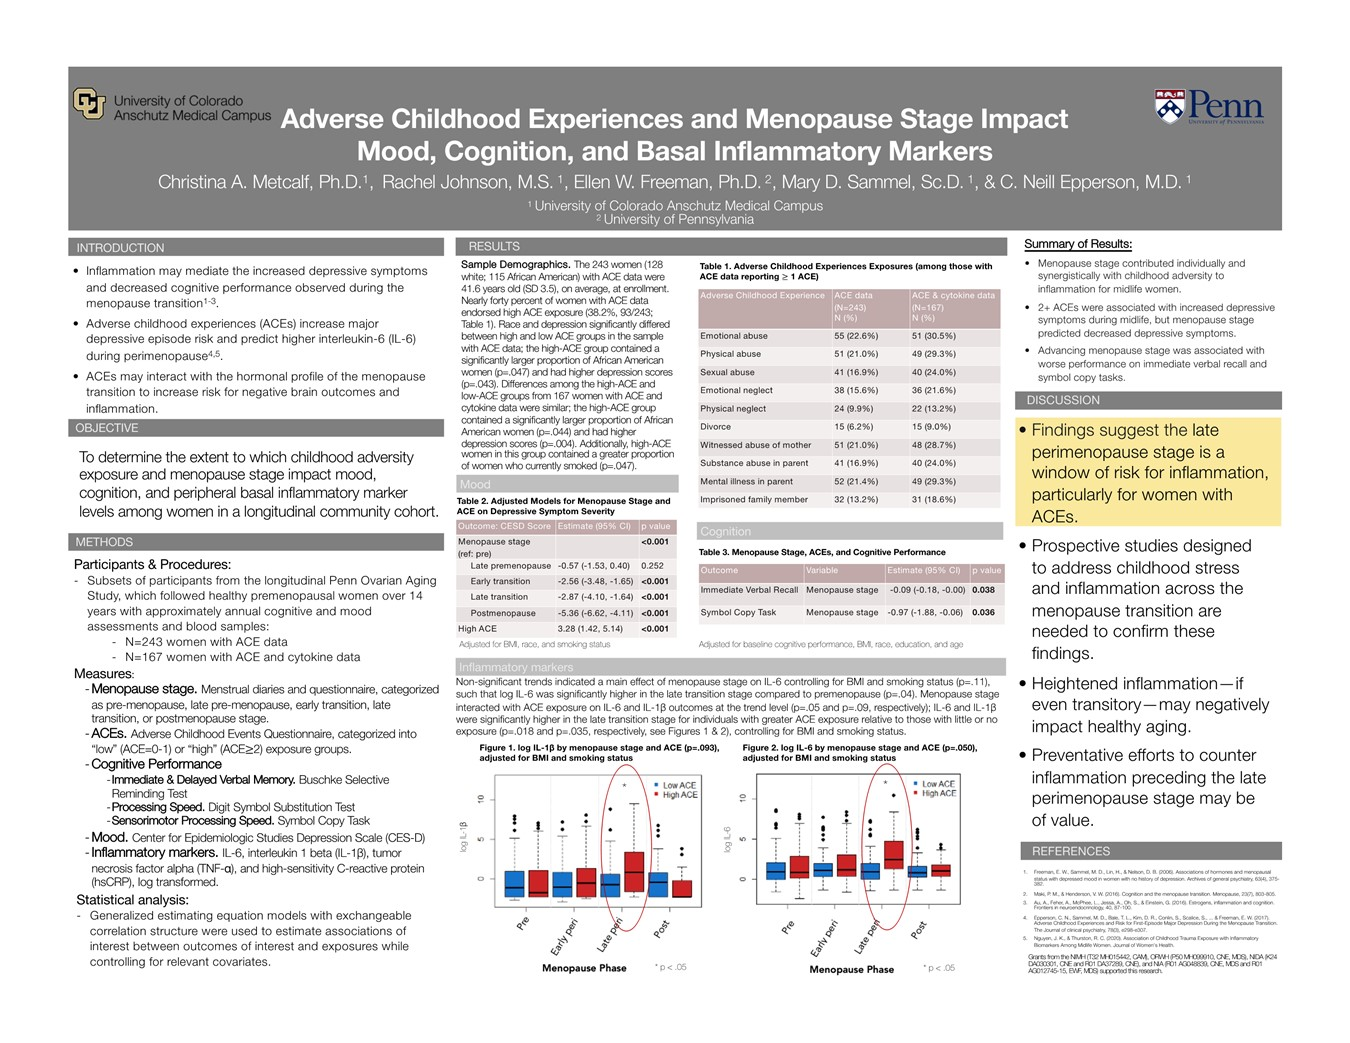 Adverse Childhood Experiences and Menopause Stage Impact Mood, Cognition, and Basal Inflammatory Markers